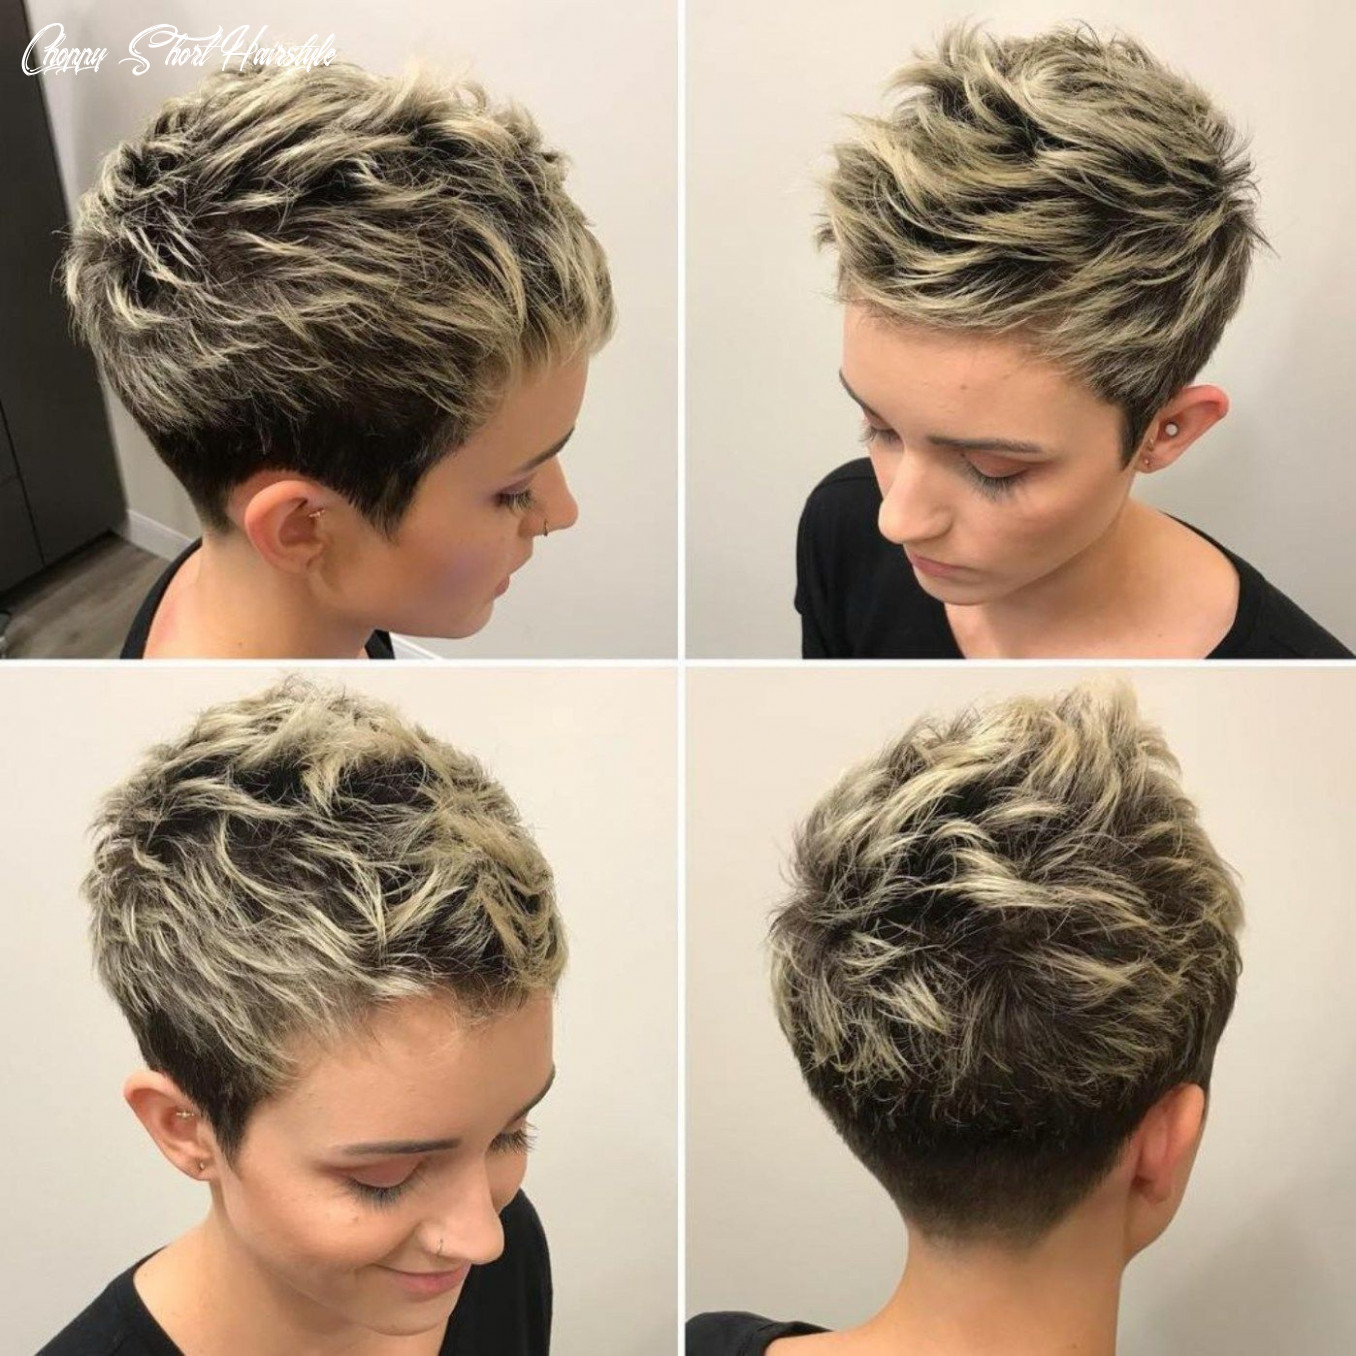 9 overwhelming ideas for short choppy haircuts (with images